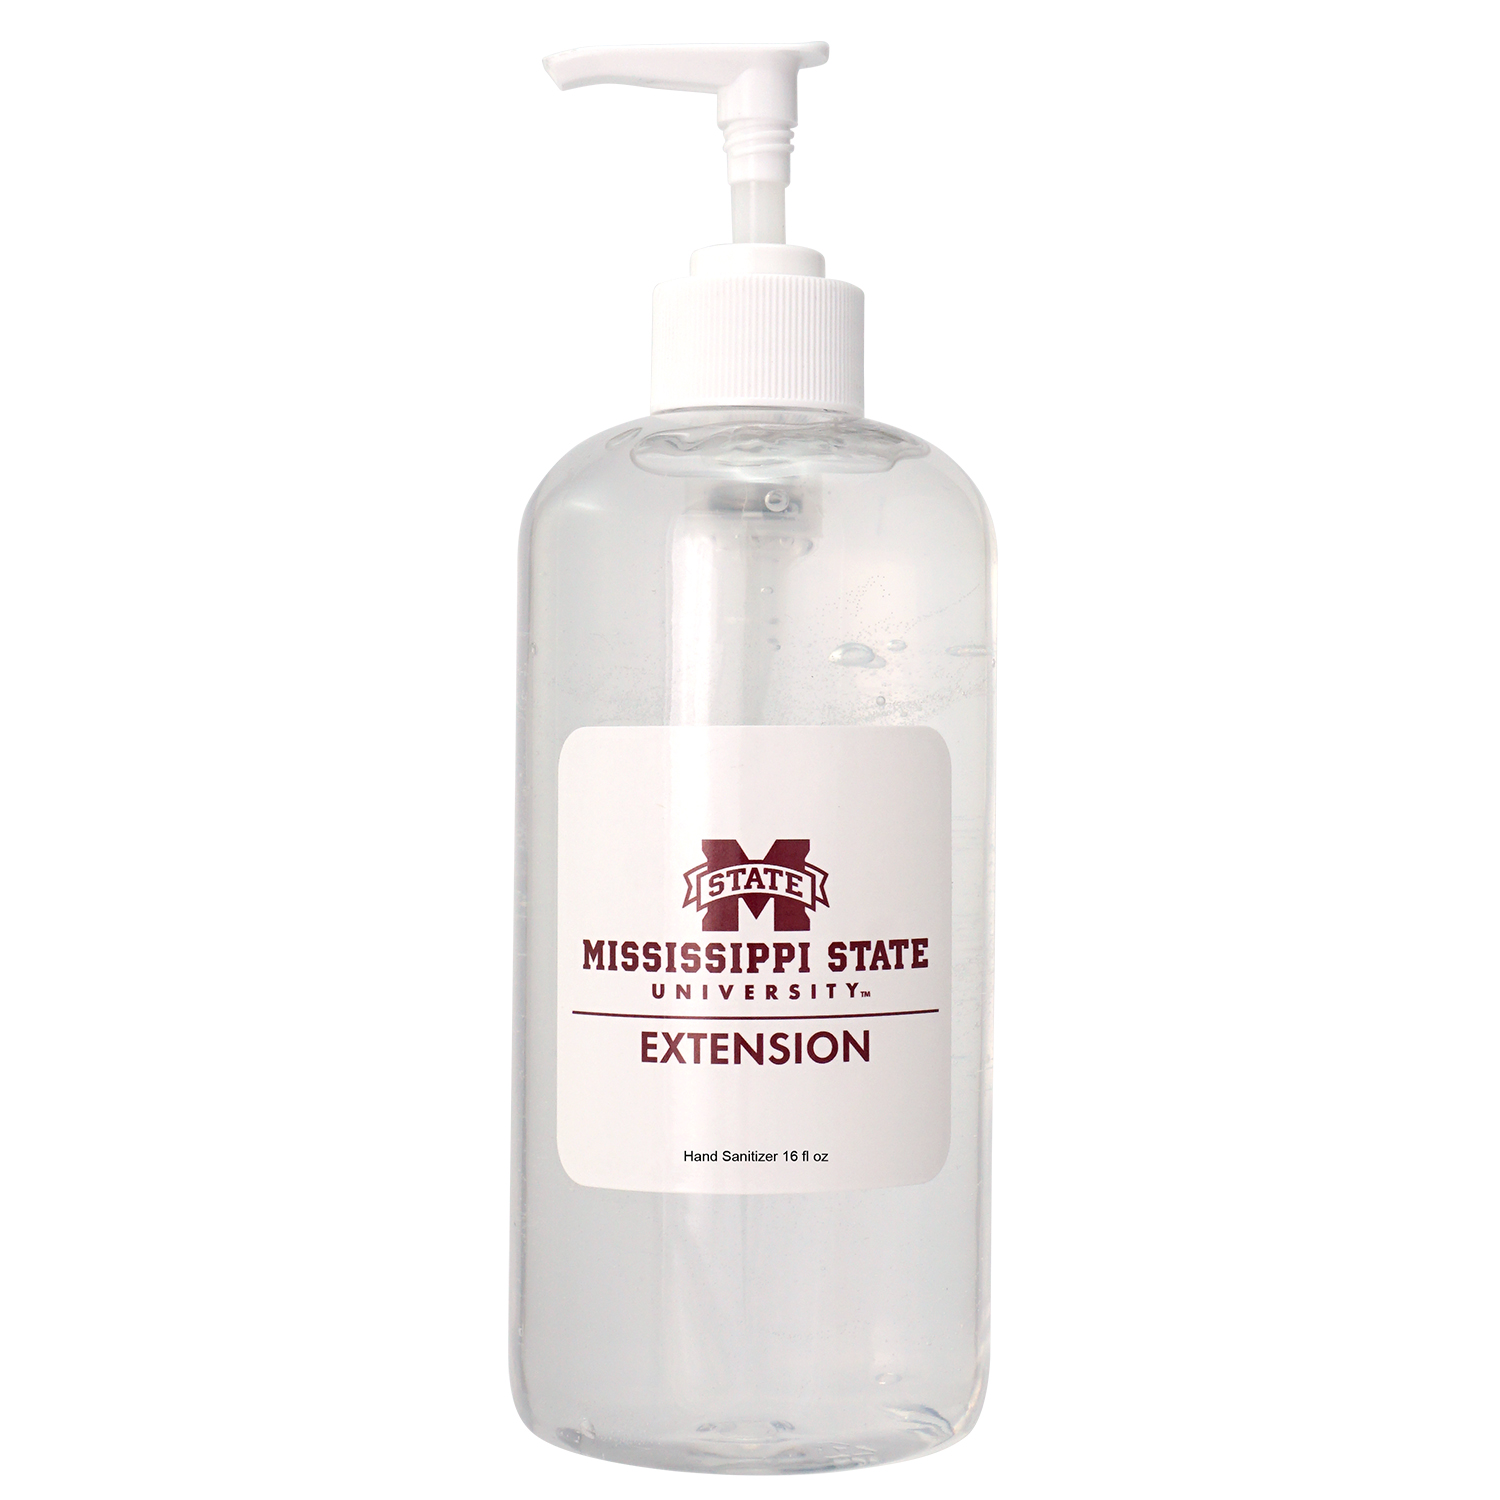 16 oz. Pump Hand Sanitizer